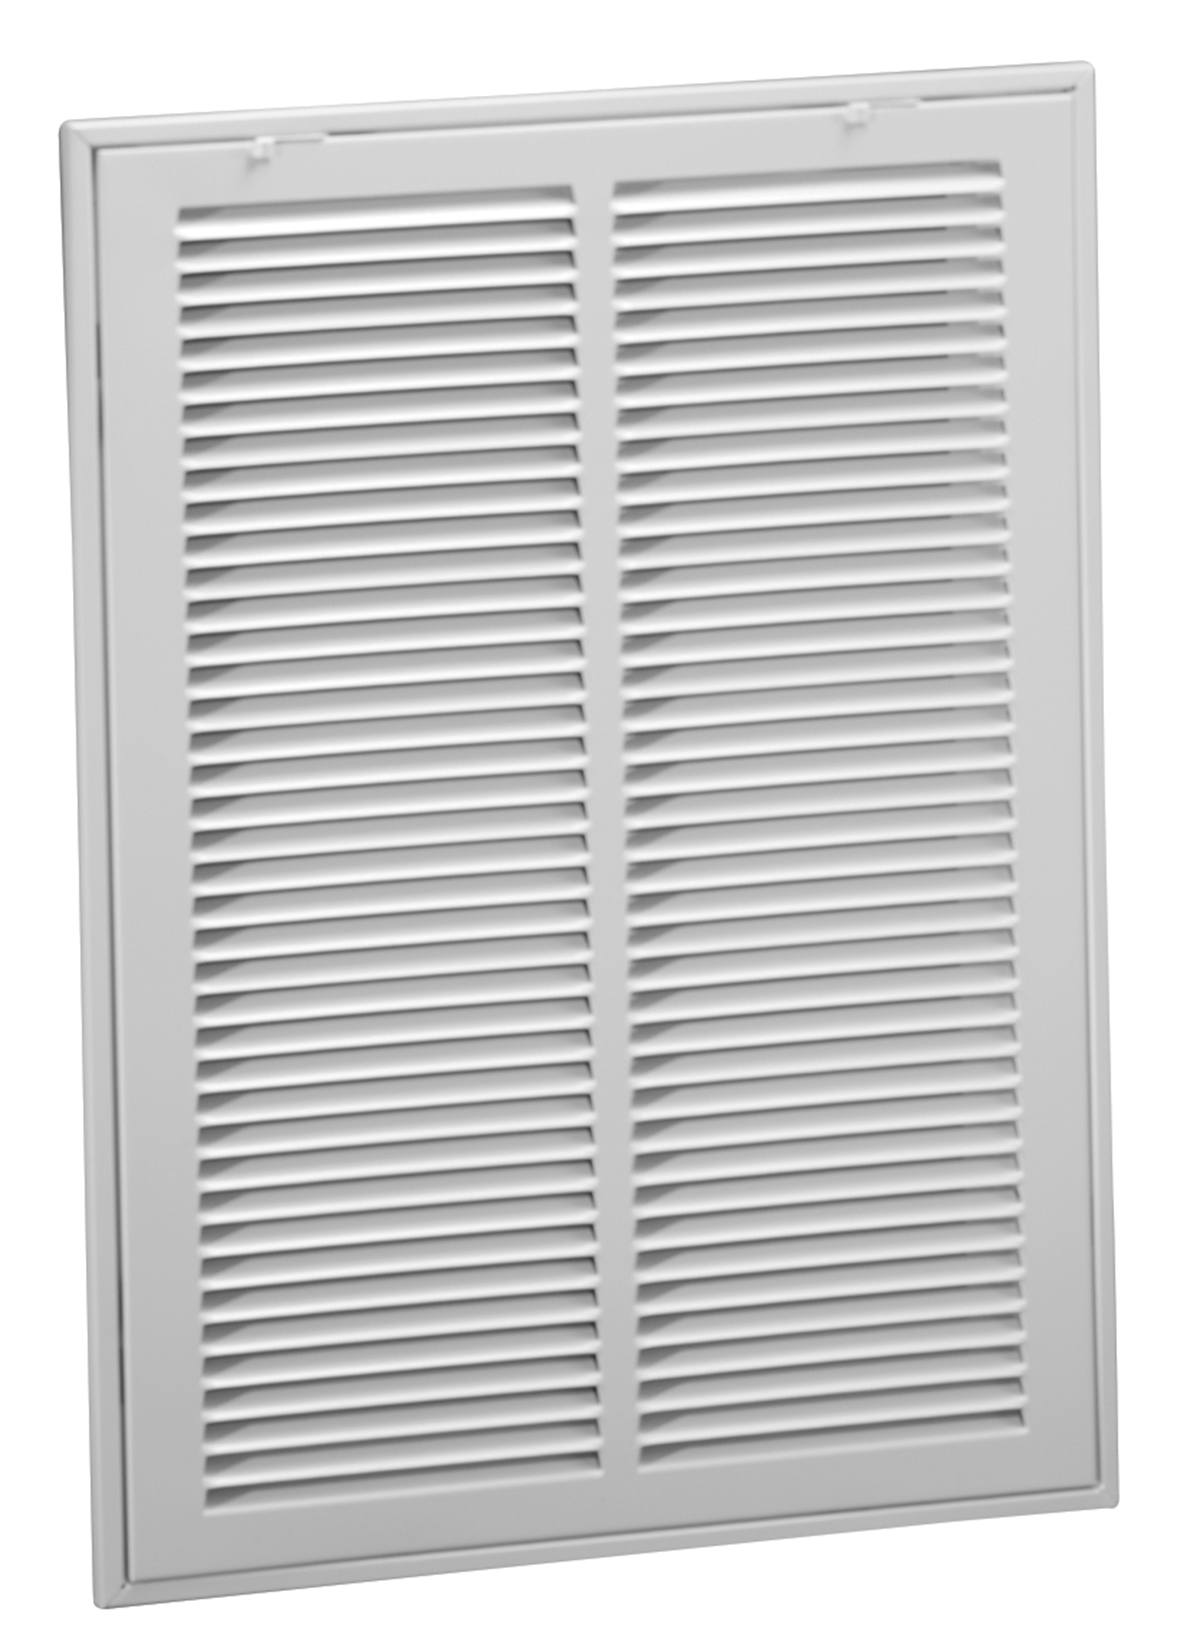 673 Steel Return Air Filter Grille 1 2 Quot Fin Spacing